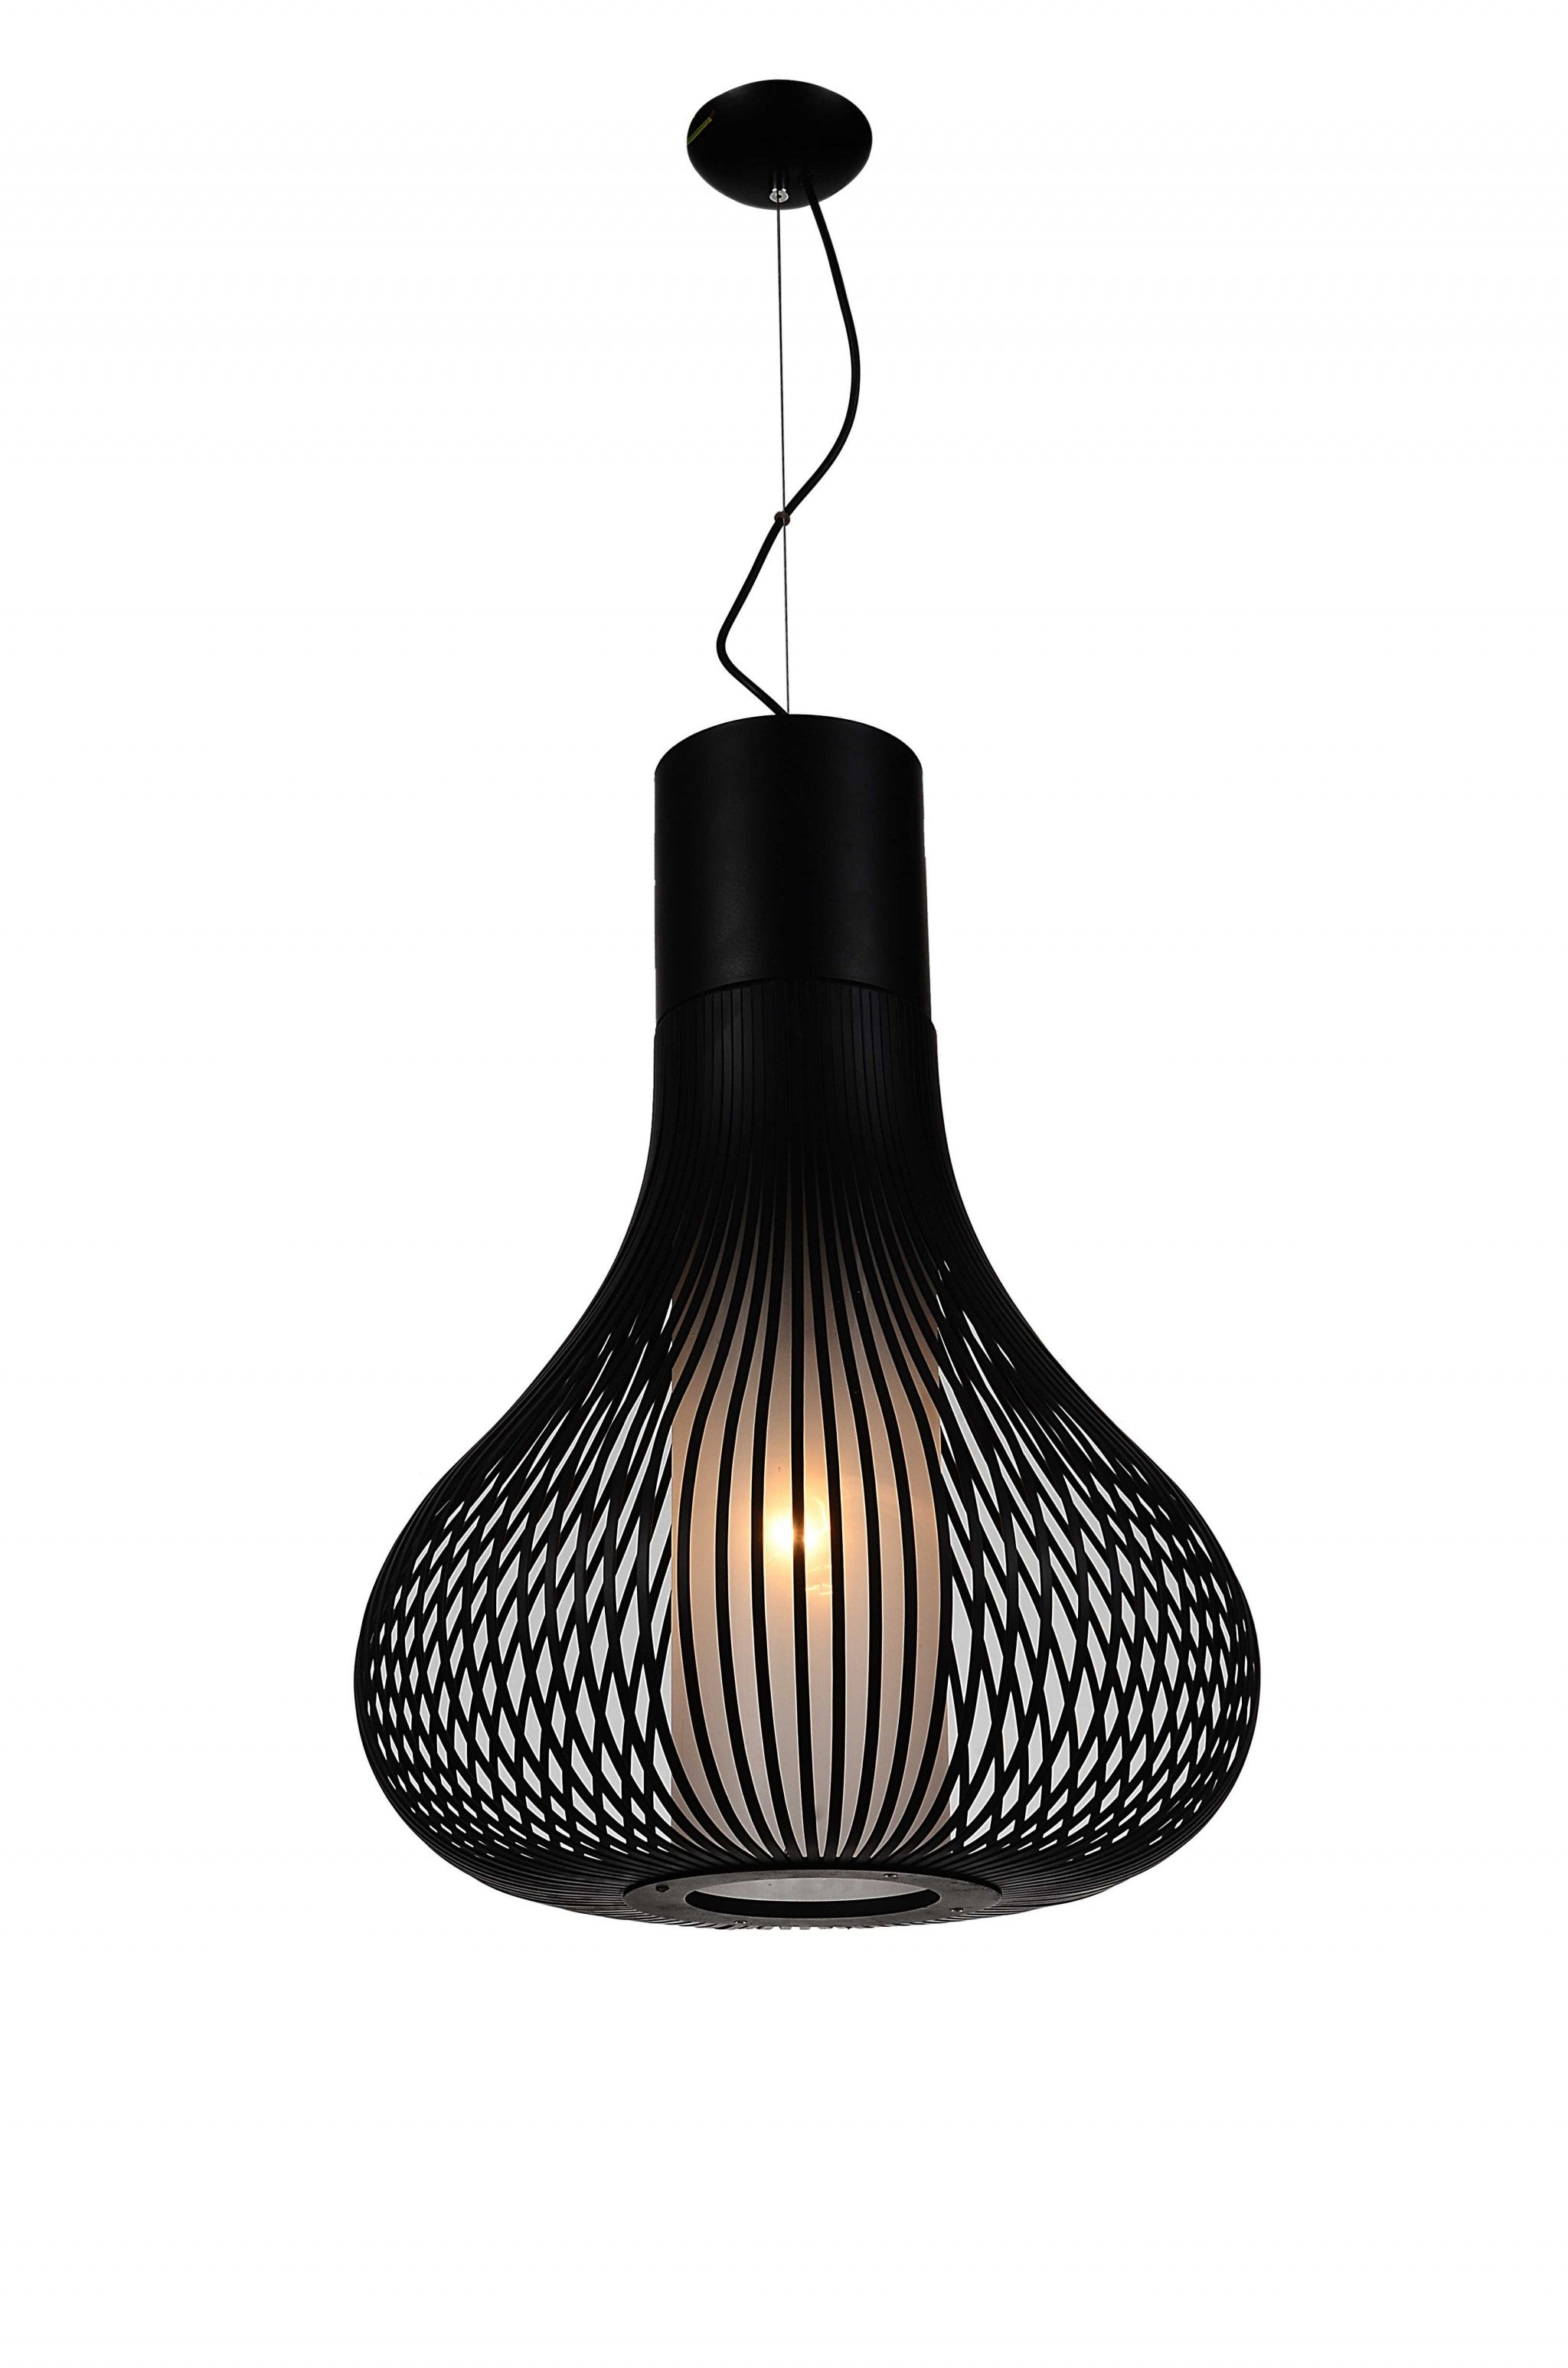 "20"" X 20"" X 26"" Black Carbon Steel Pemdant Lamp"